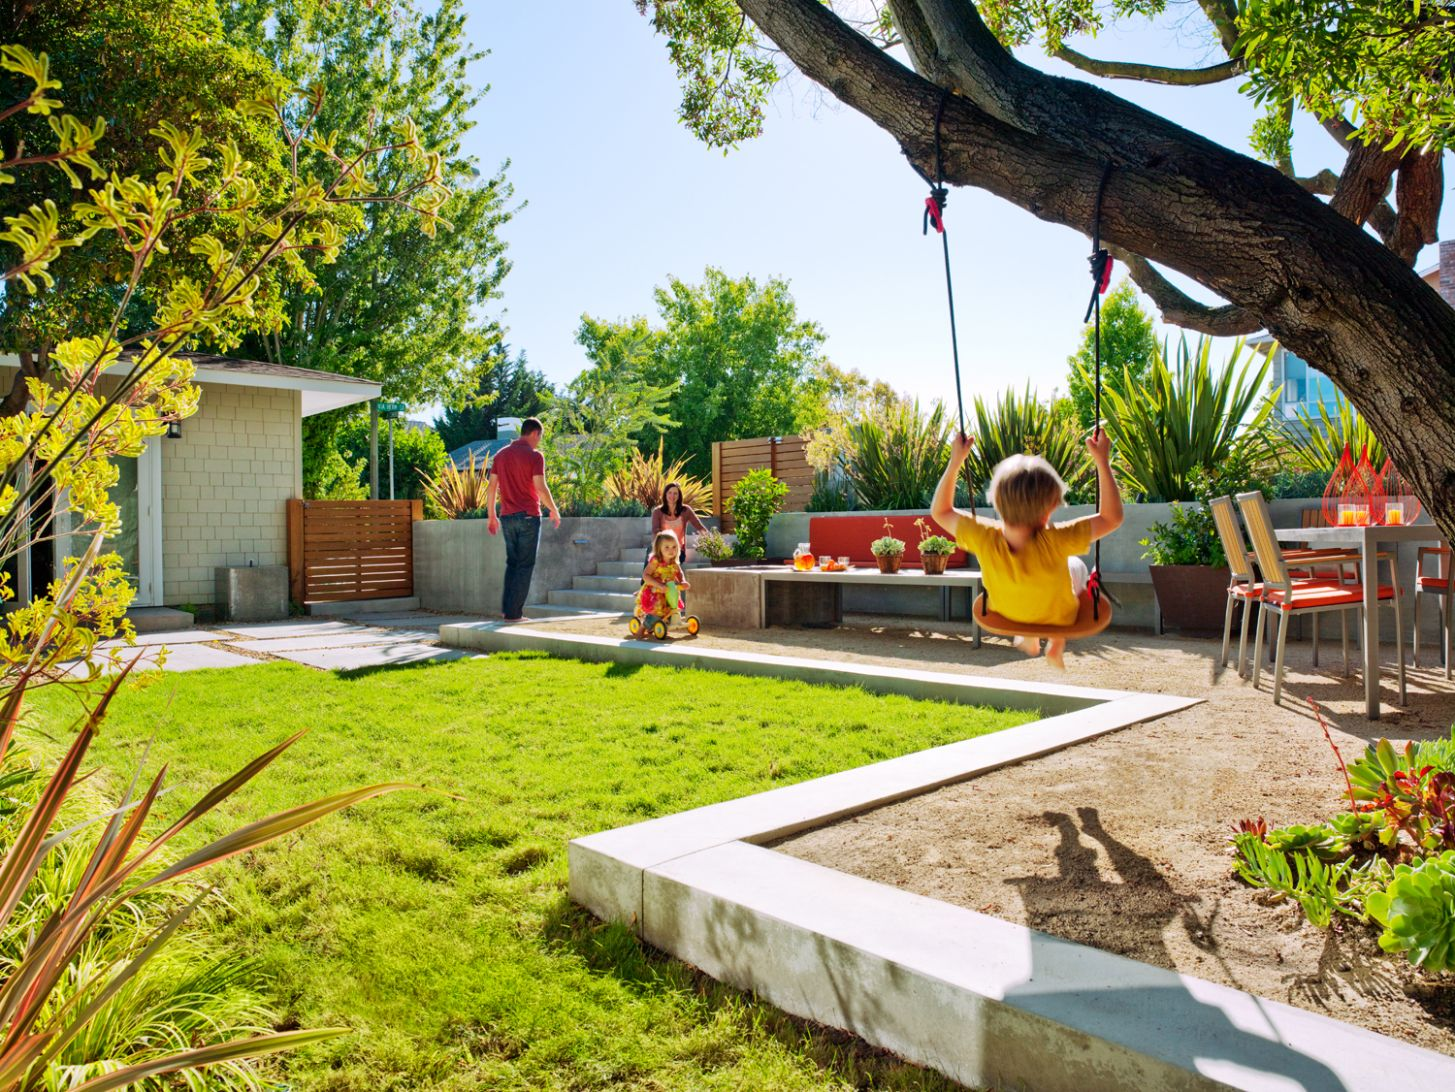 Awesome Backyard Ideas for Kids - Sunset Magazine - garden ideas kid friendly